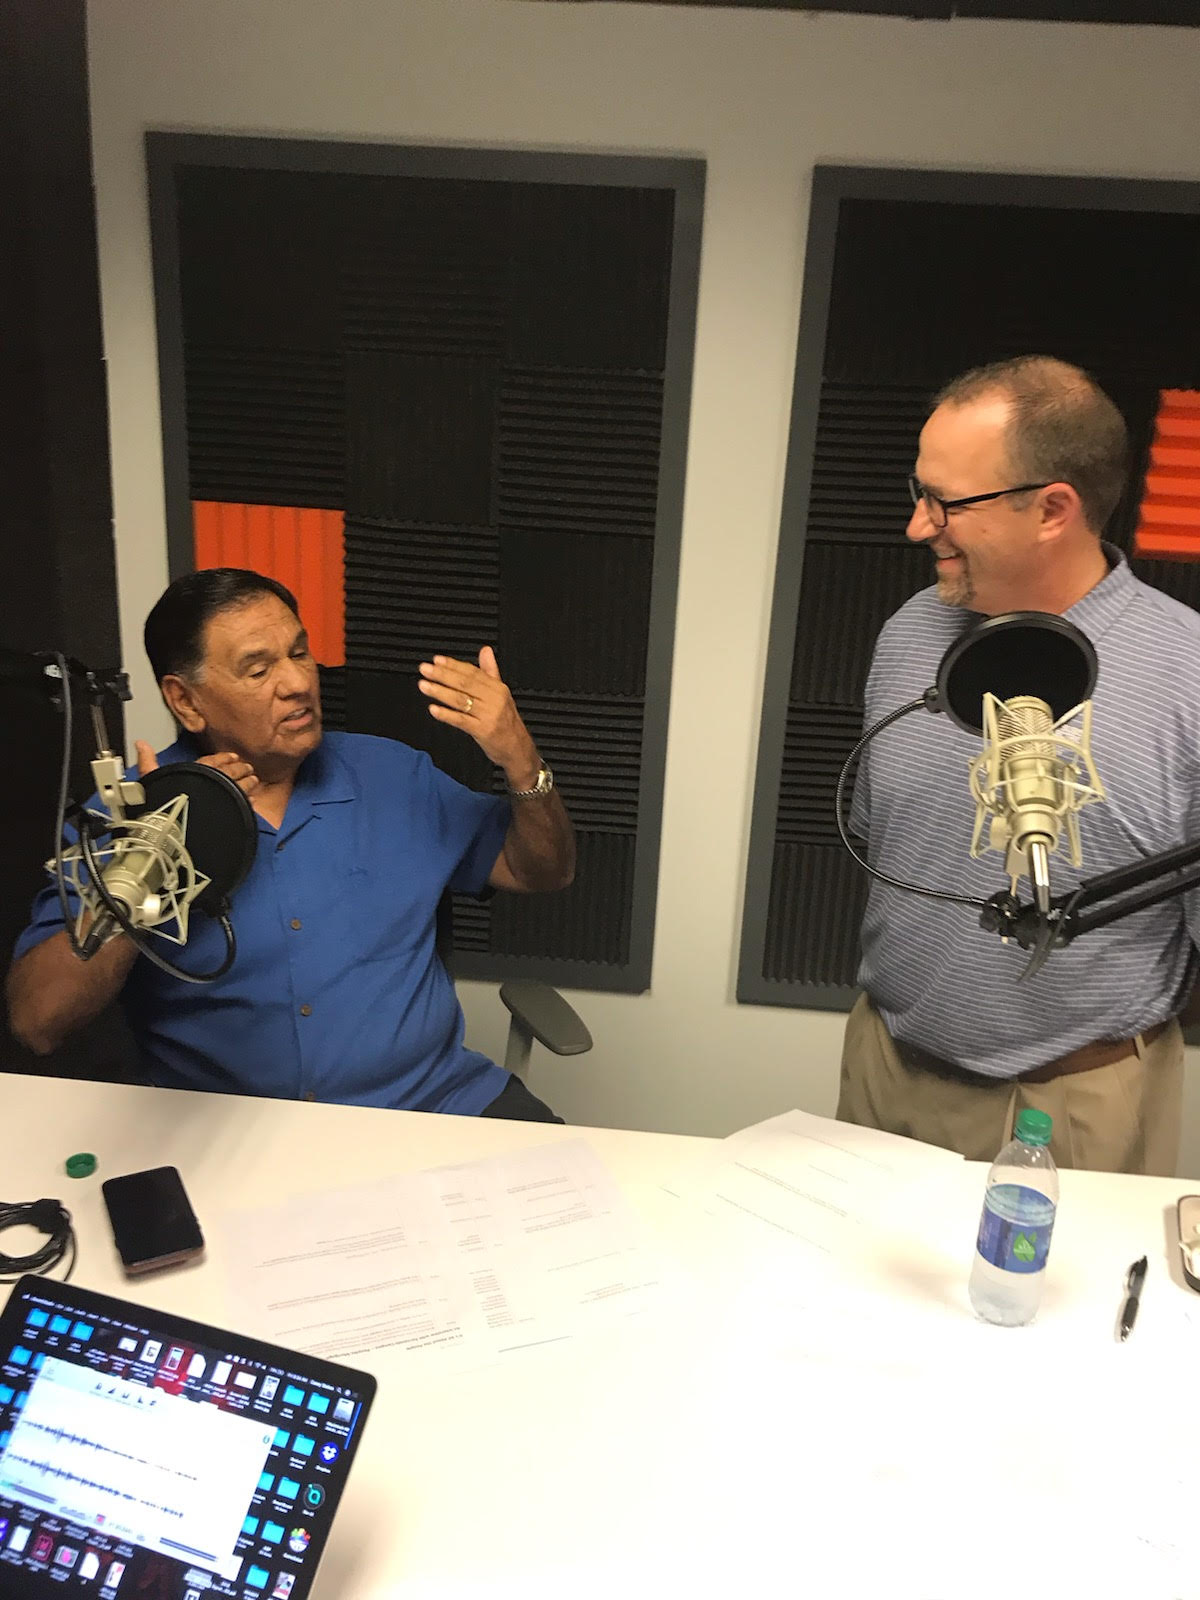 Executive Leadership Podcast #36: It's All About People